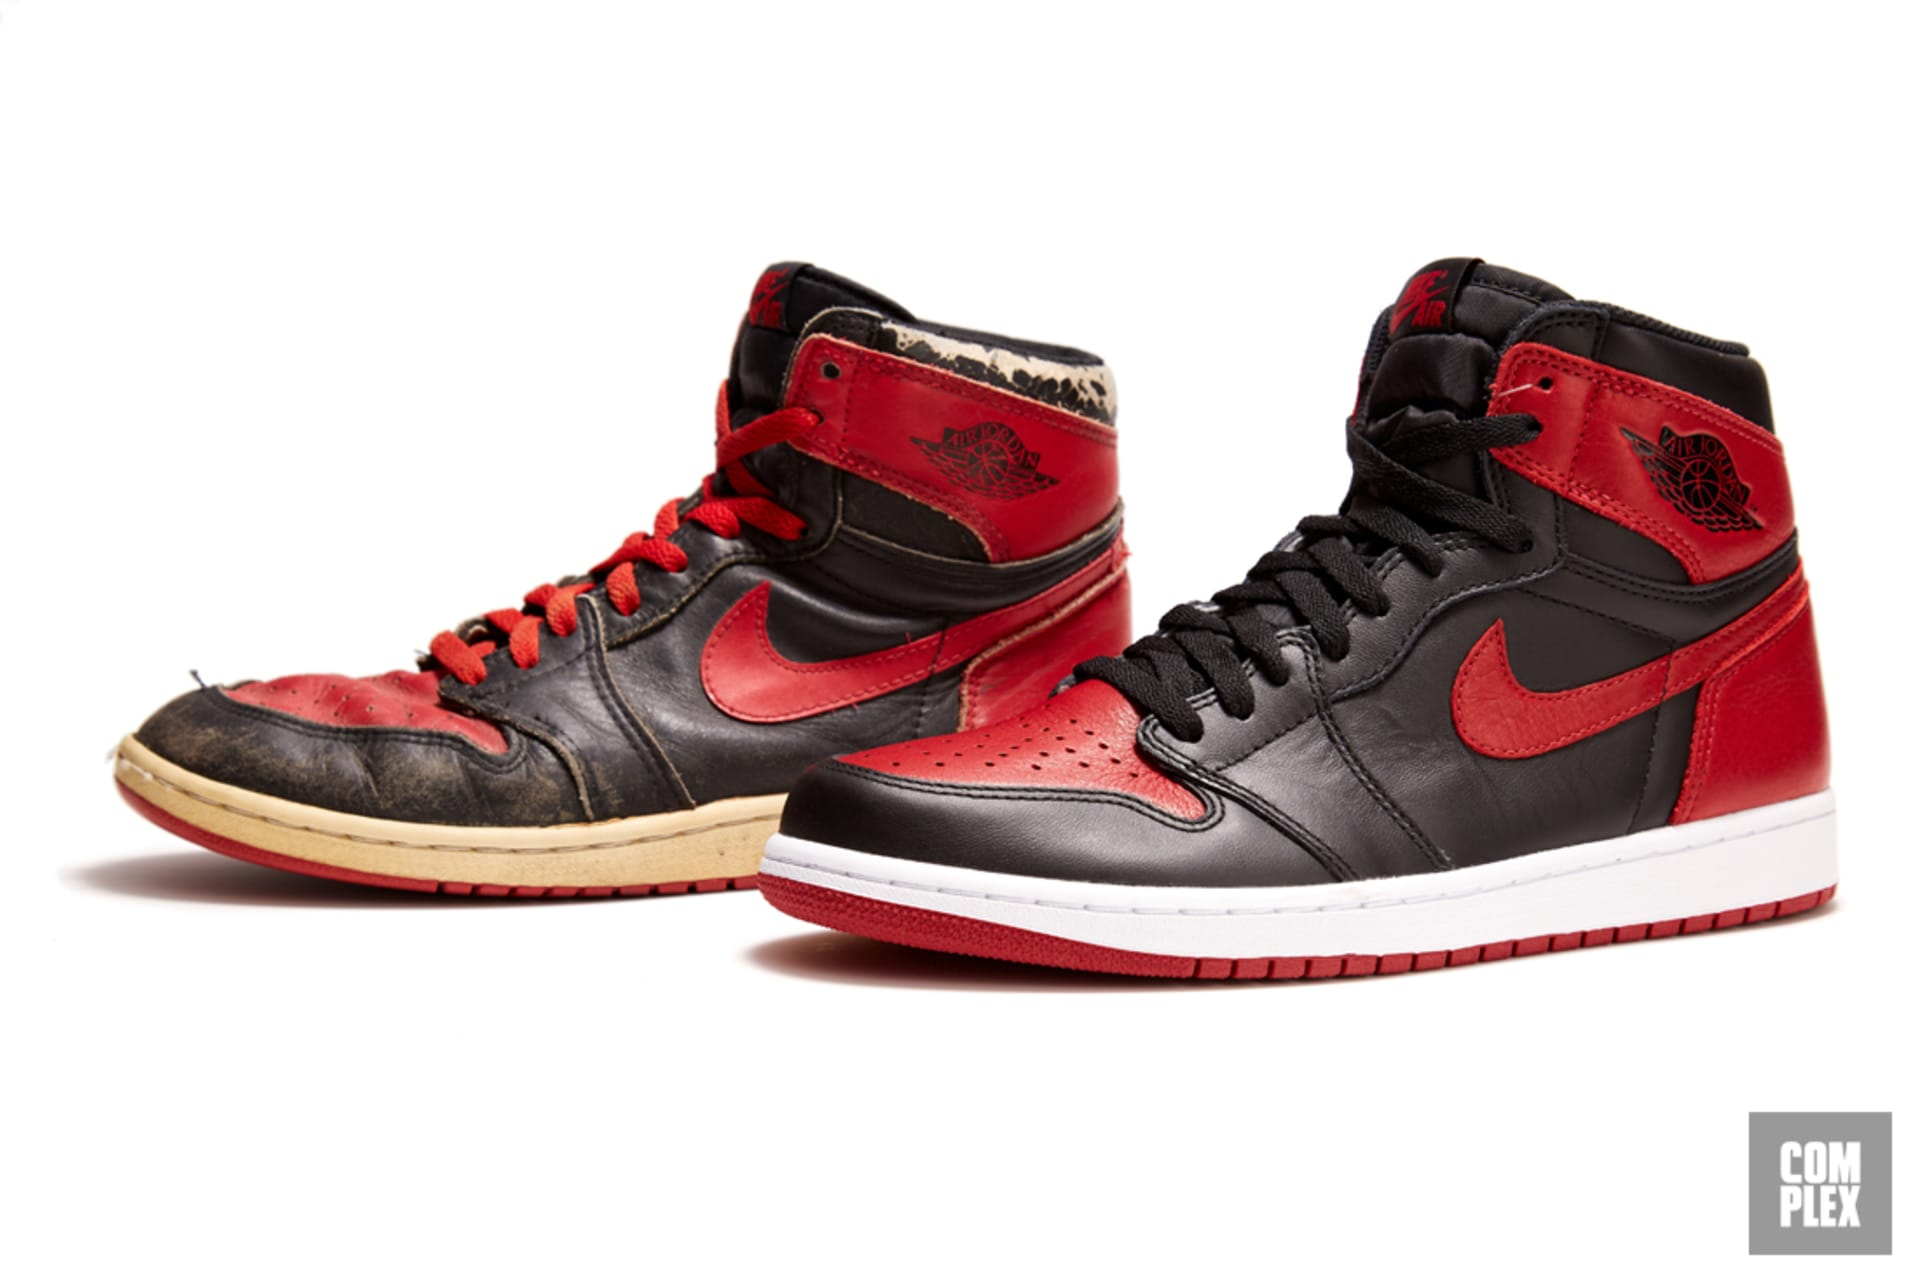 39e87a5160d20e The Evolution of the Black and Red Air Jordan 1